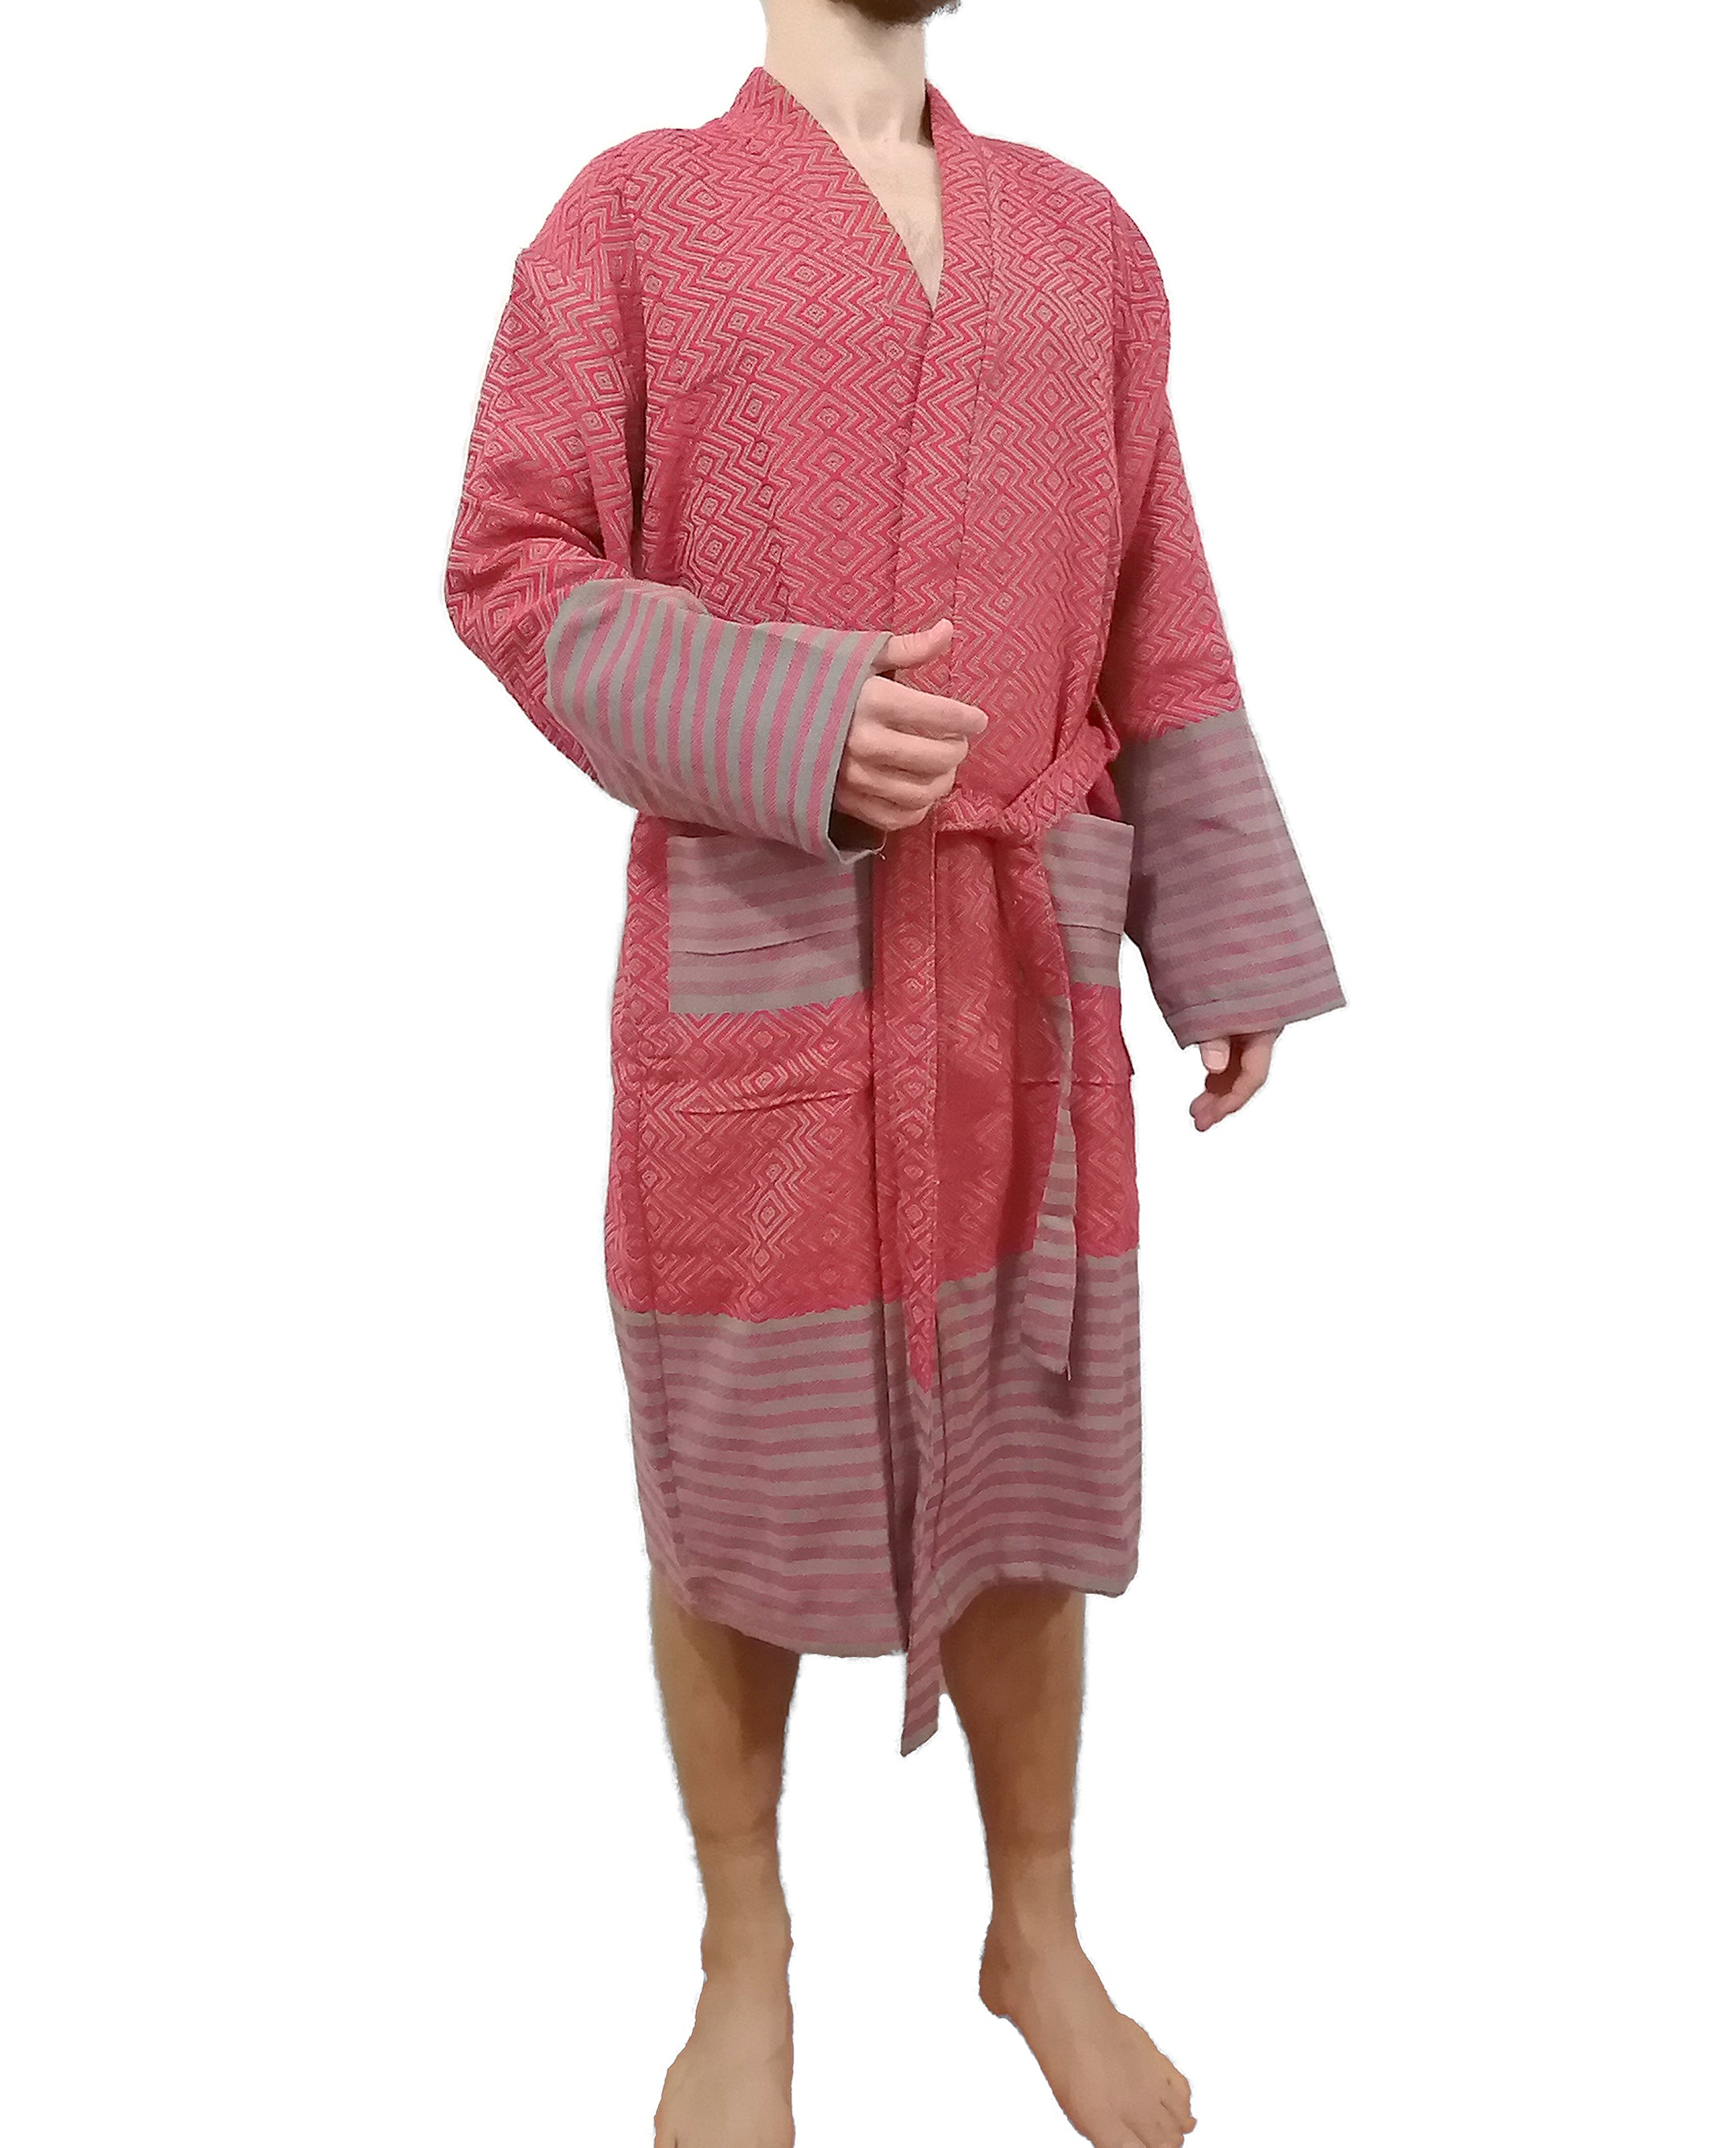 Turkish robe sultan red made with the finest quality Turkish cotton, super soft, lightweight Turkish towel robes, Perfect for drying off and staying warm, superior absorbency.it is with arrow pattern.